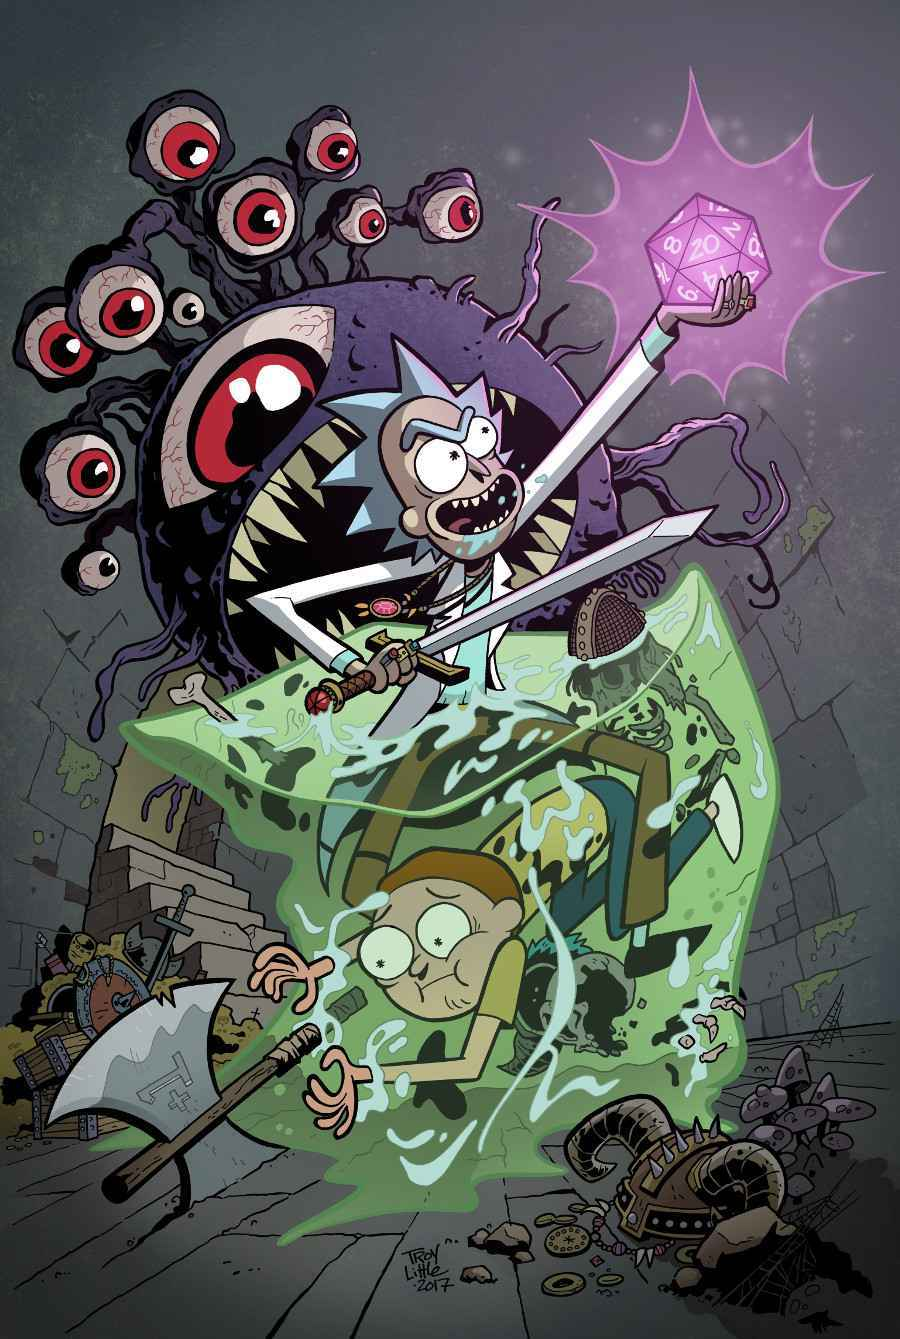 Rick and Morty Dungeons and Dragons Crossover